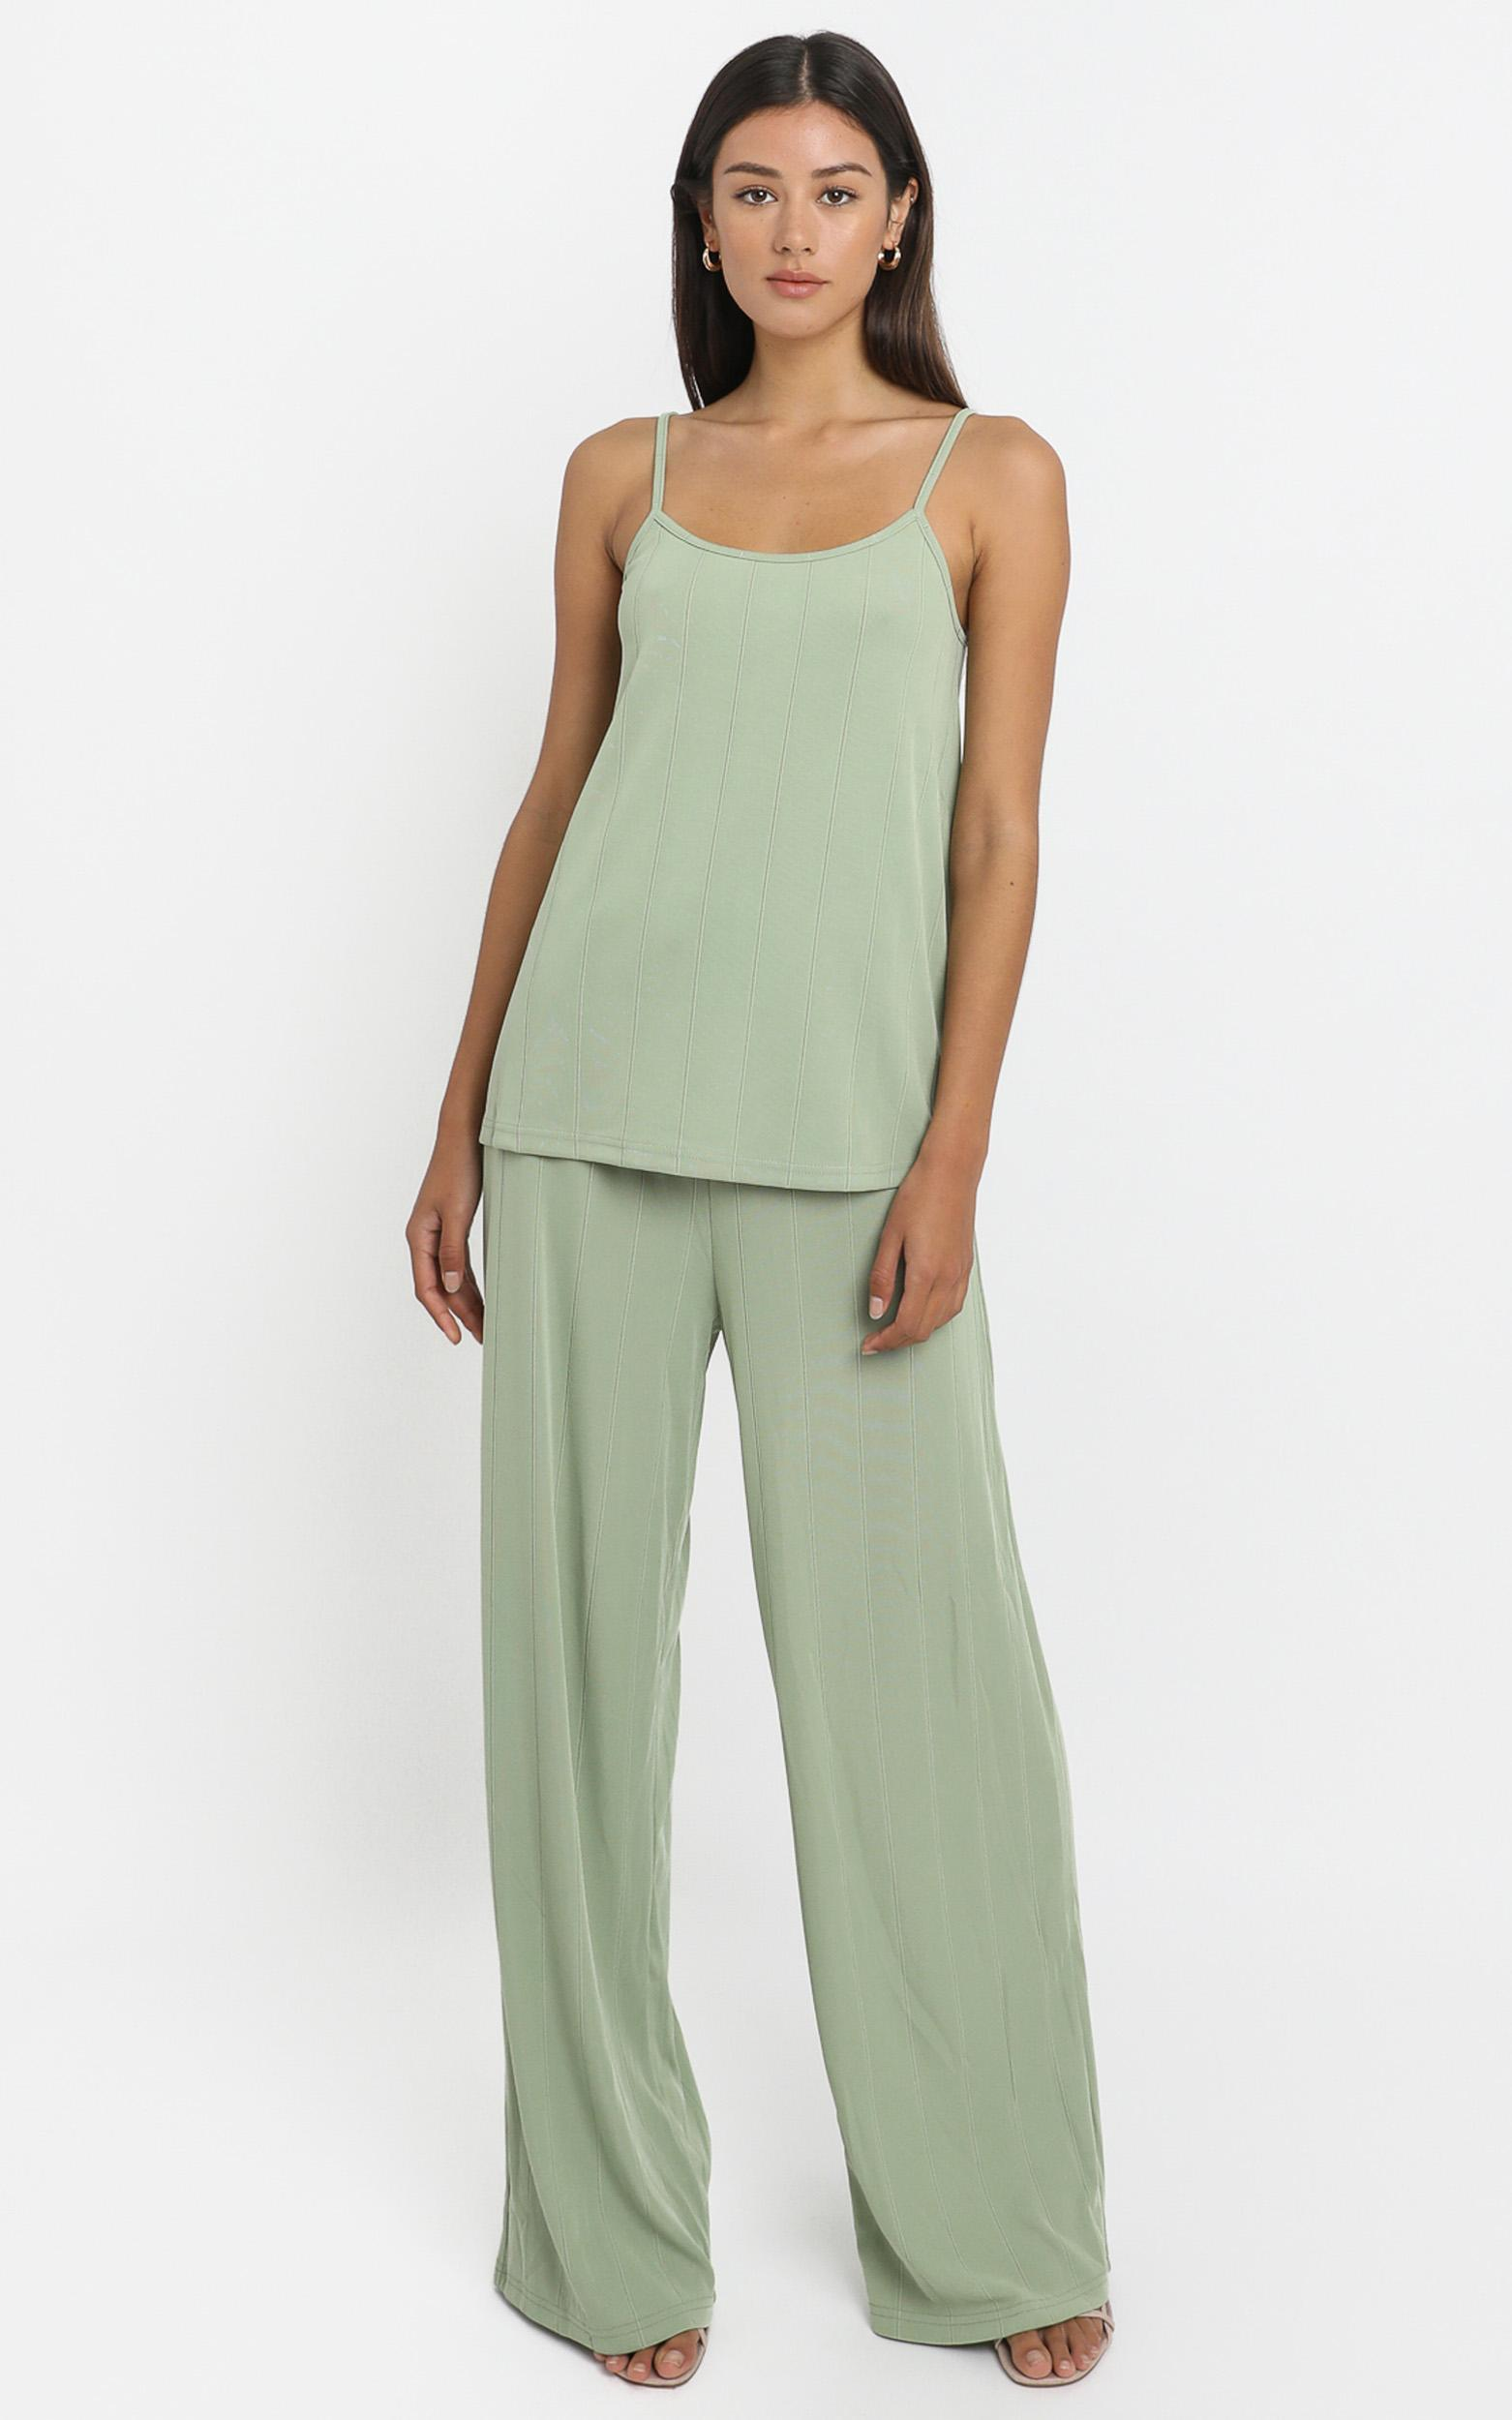 Element Pants in Olive - 6 (XS), Green, hi-res image number null